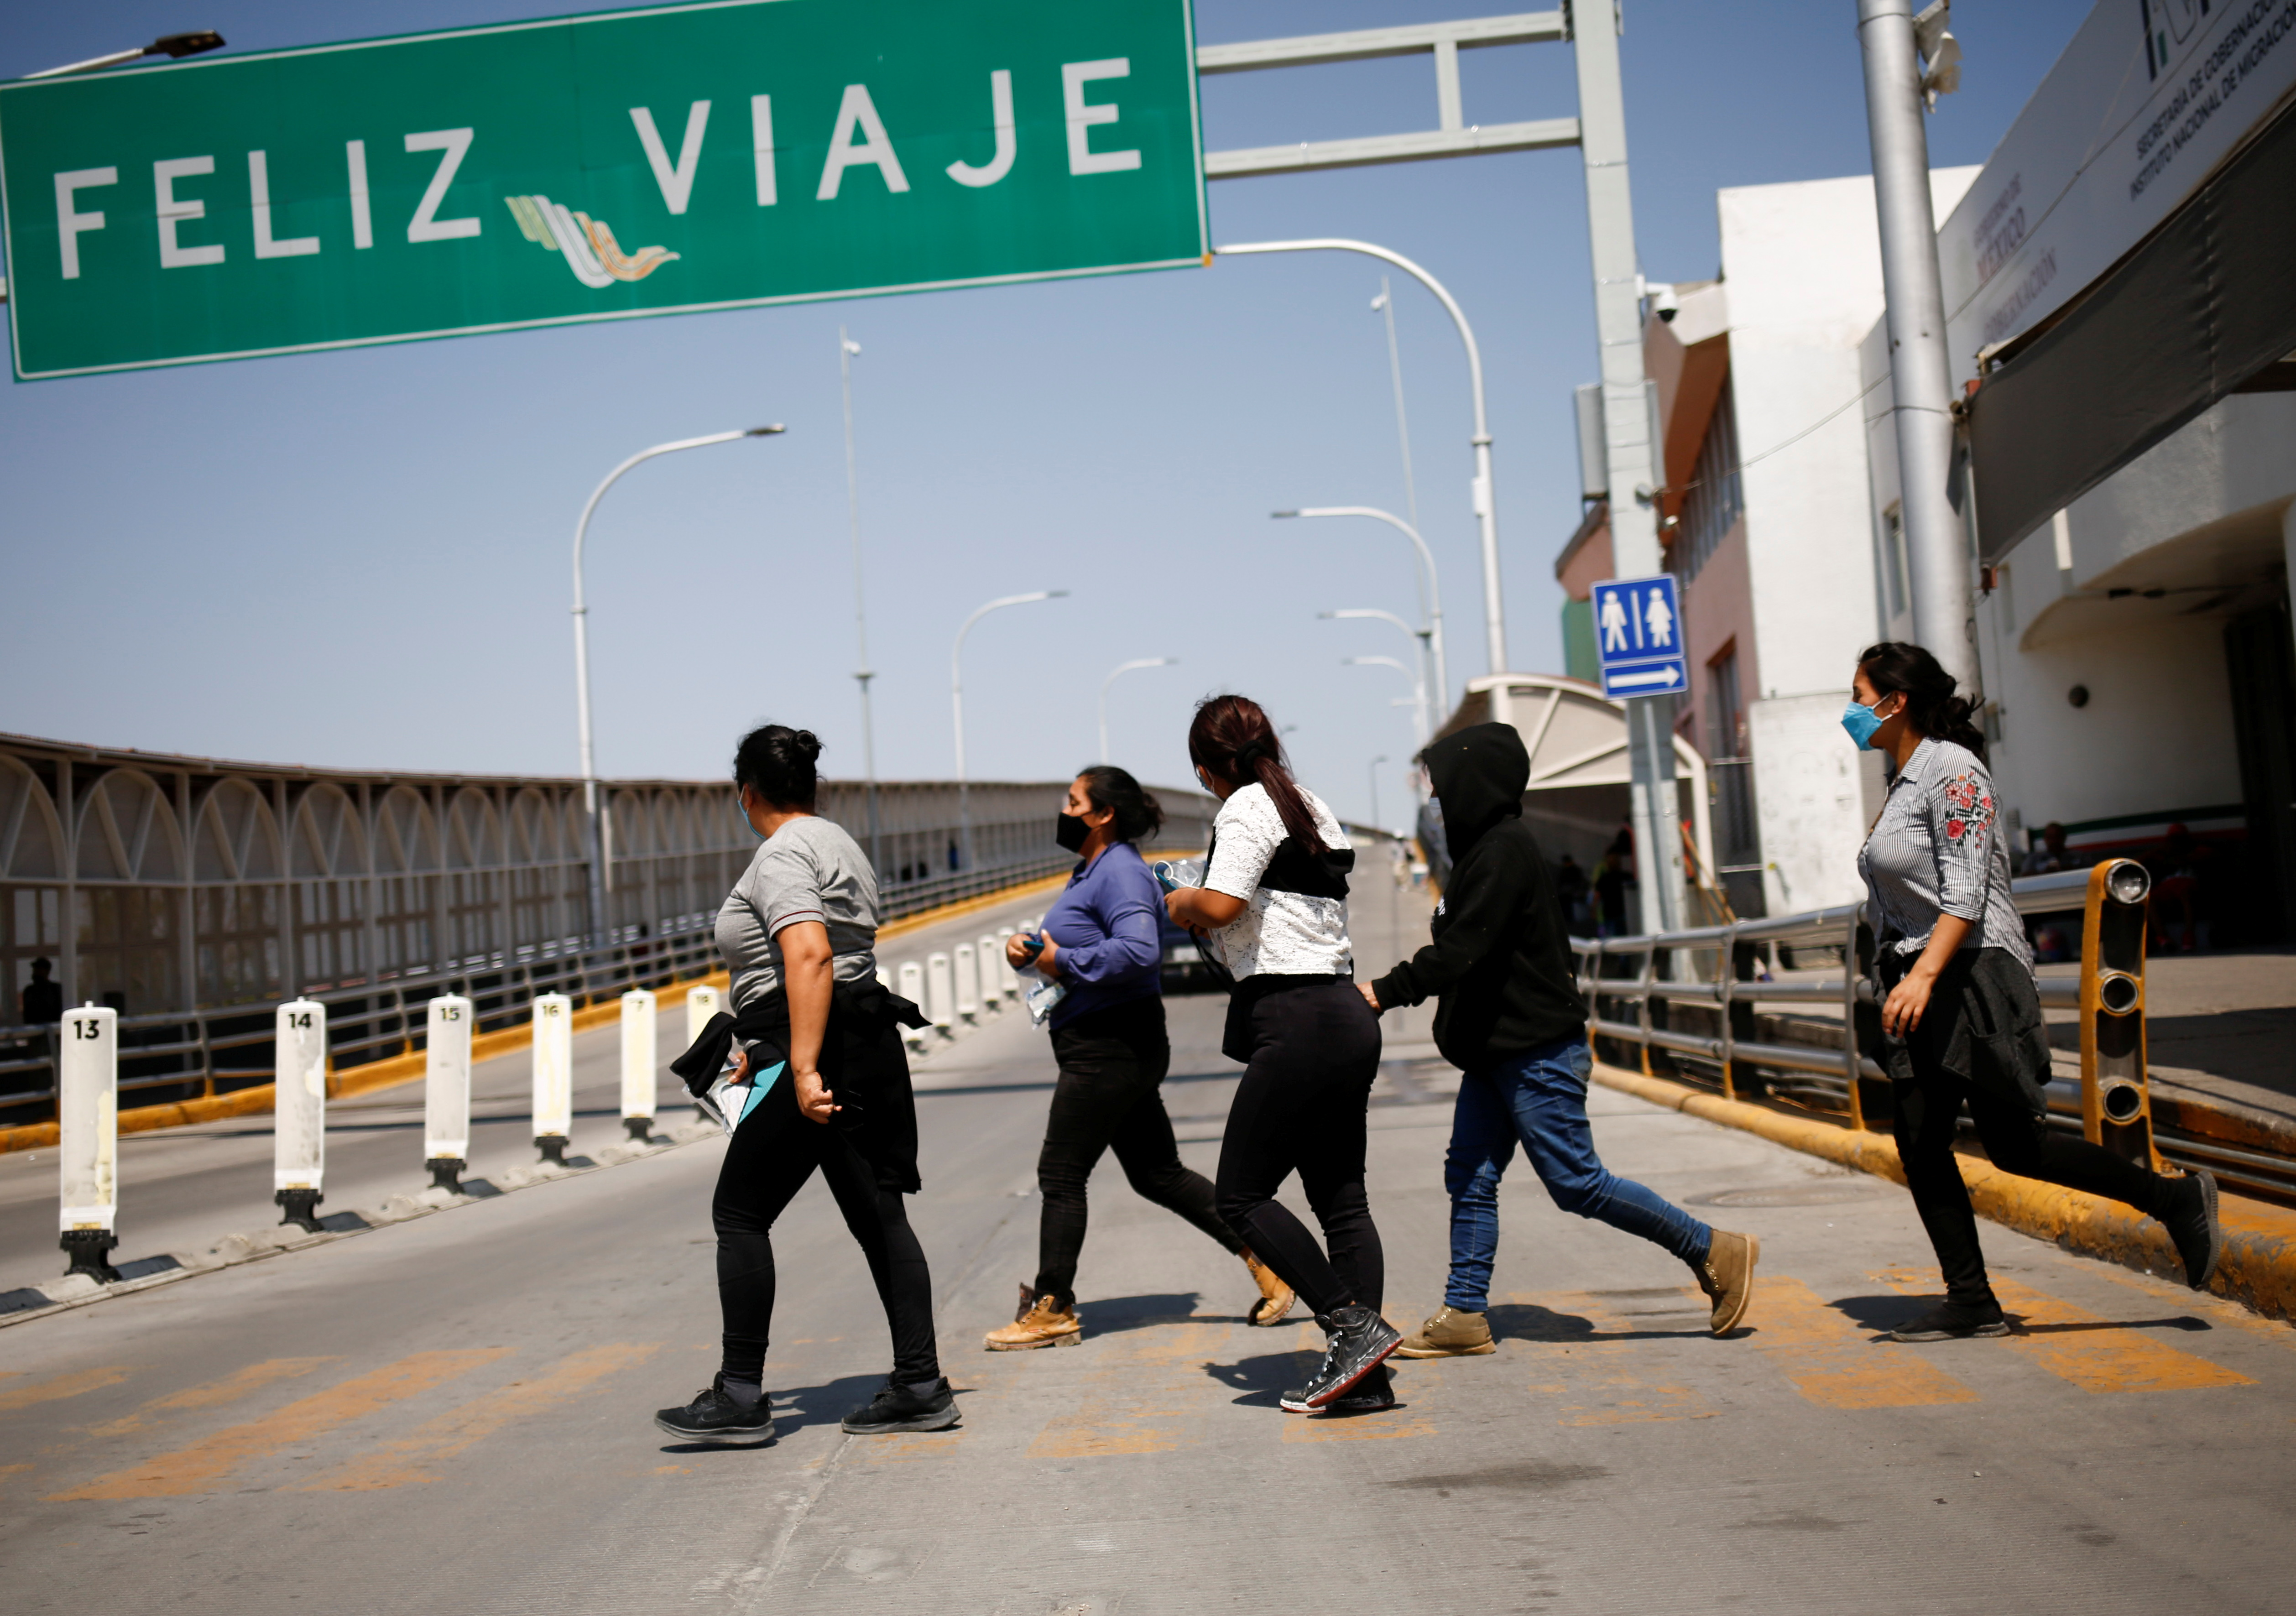 Migrants expelled from the U.S. and sent back to Mexico under Title 42 walk towards Mexico at the Paso del Norte International border bridge, in Ciudad Juarez, Mexico September 9, 2021. REUTERS/Jose Luis Gonzalez